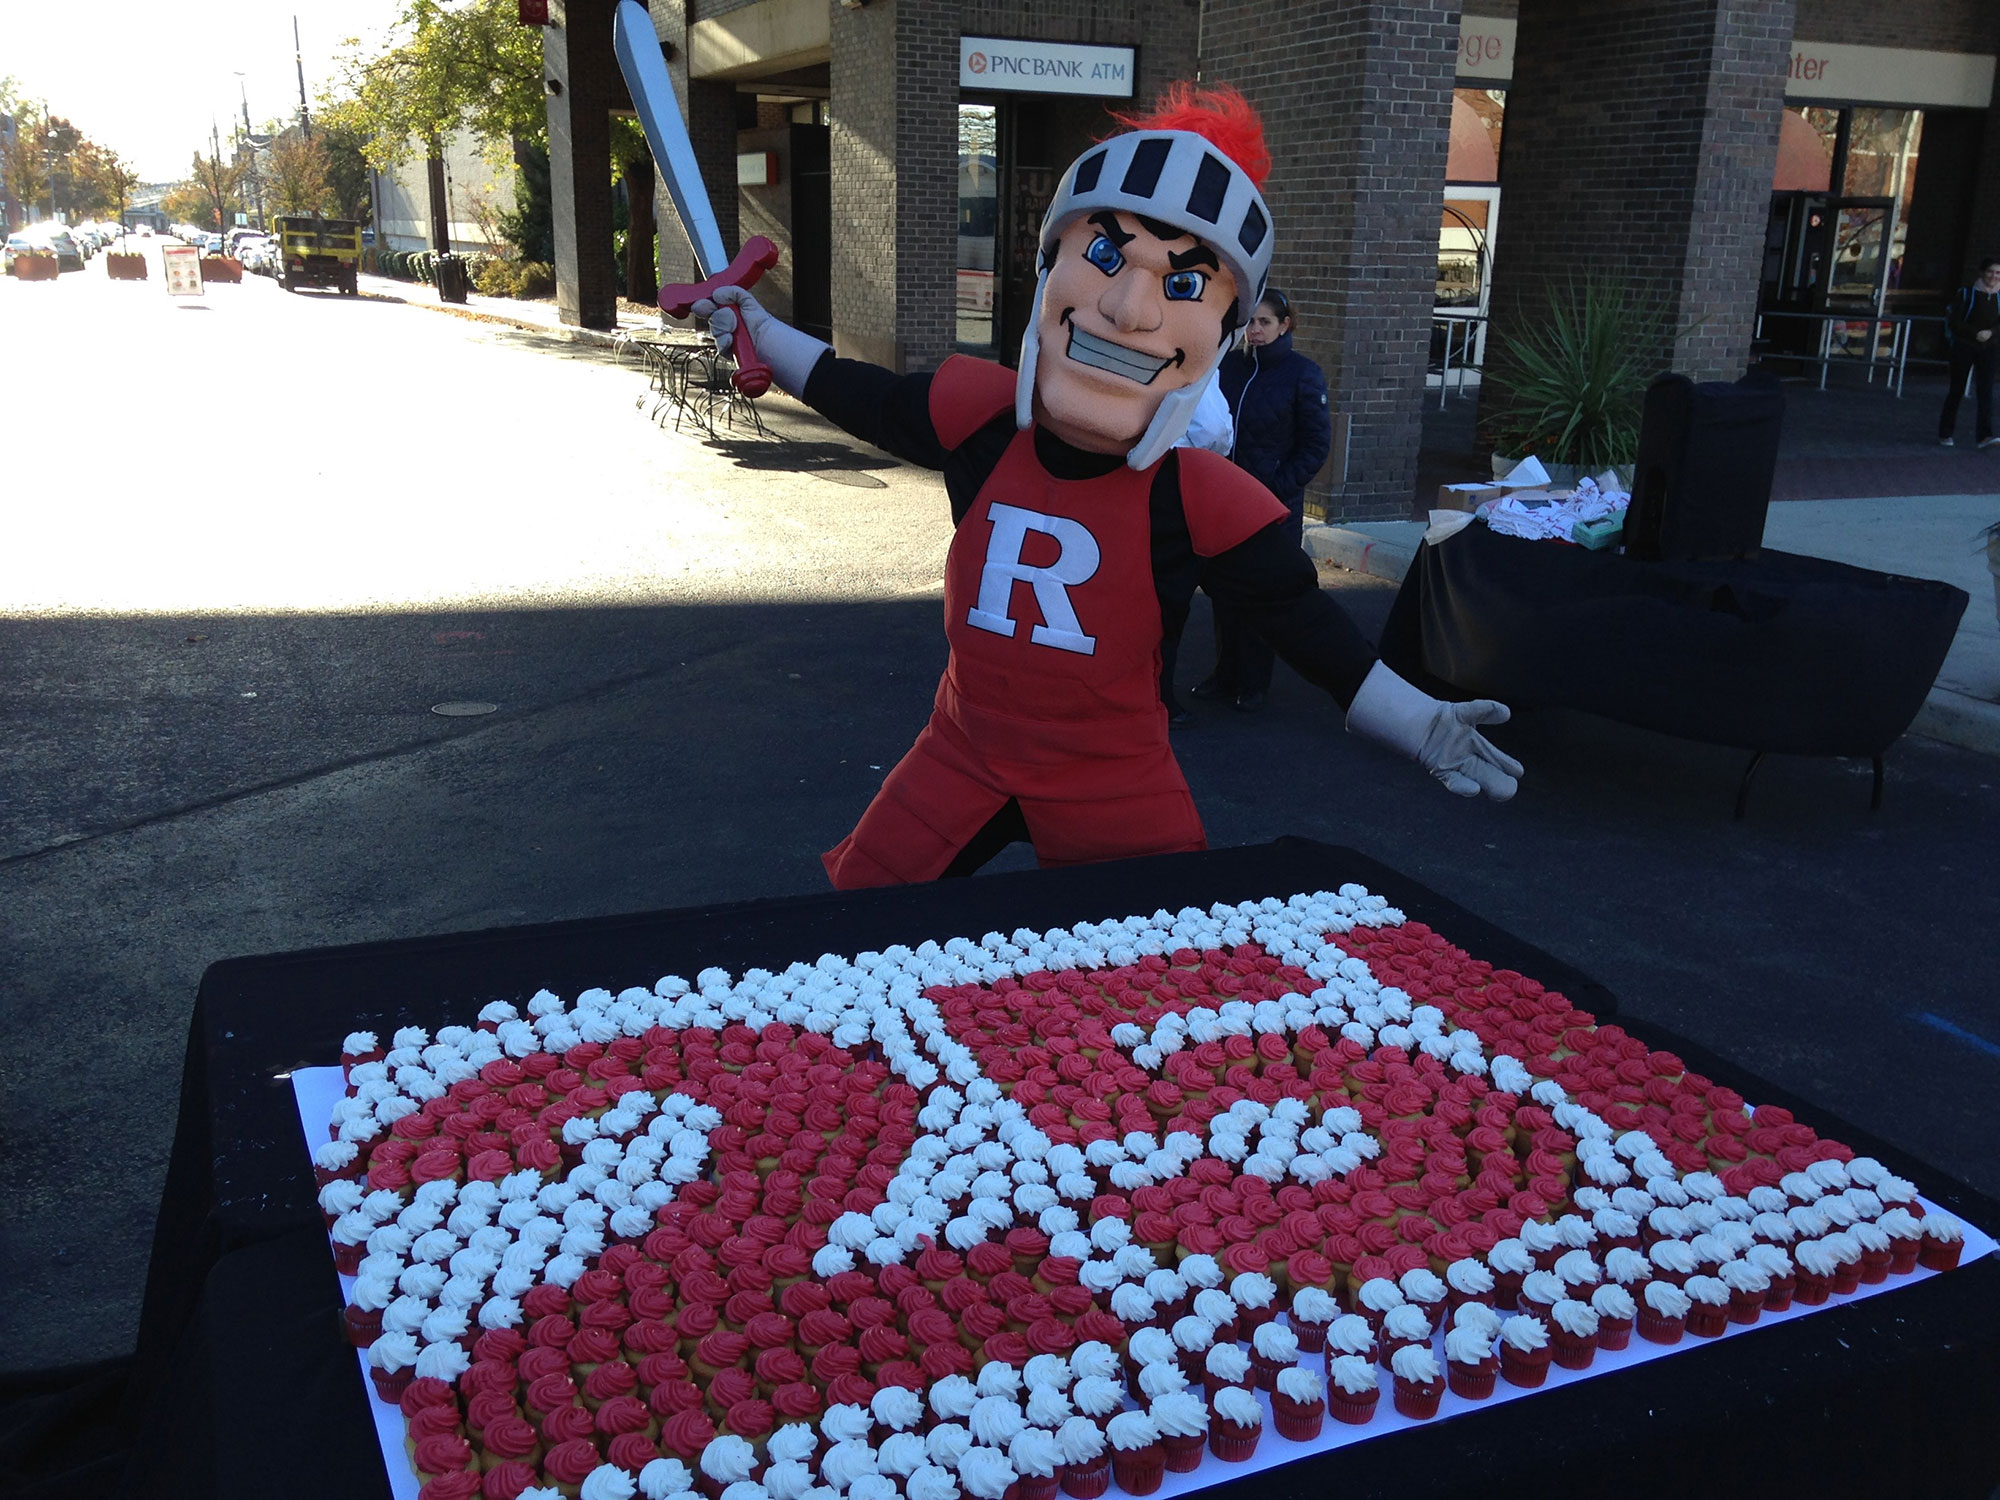 photo of rutgers mascot with cupcakes forming the number 25